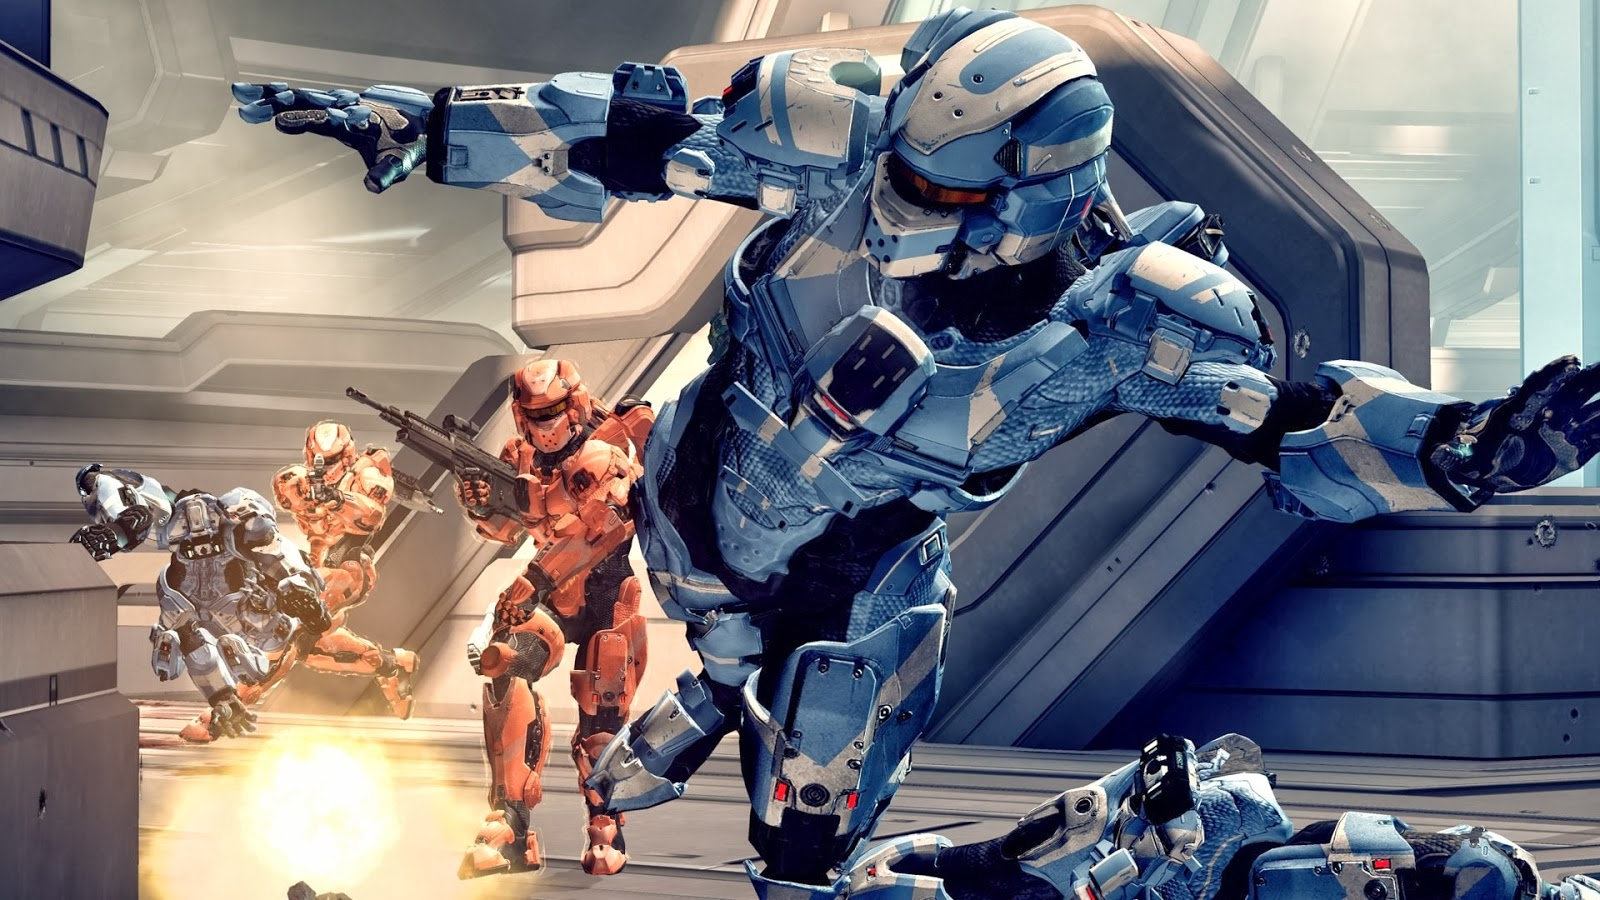 Hd Wallpapers Blog Halo 4 Master Chief Wallpapers 1600x900